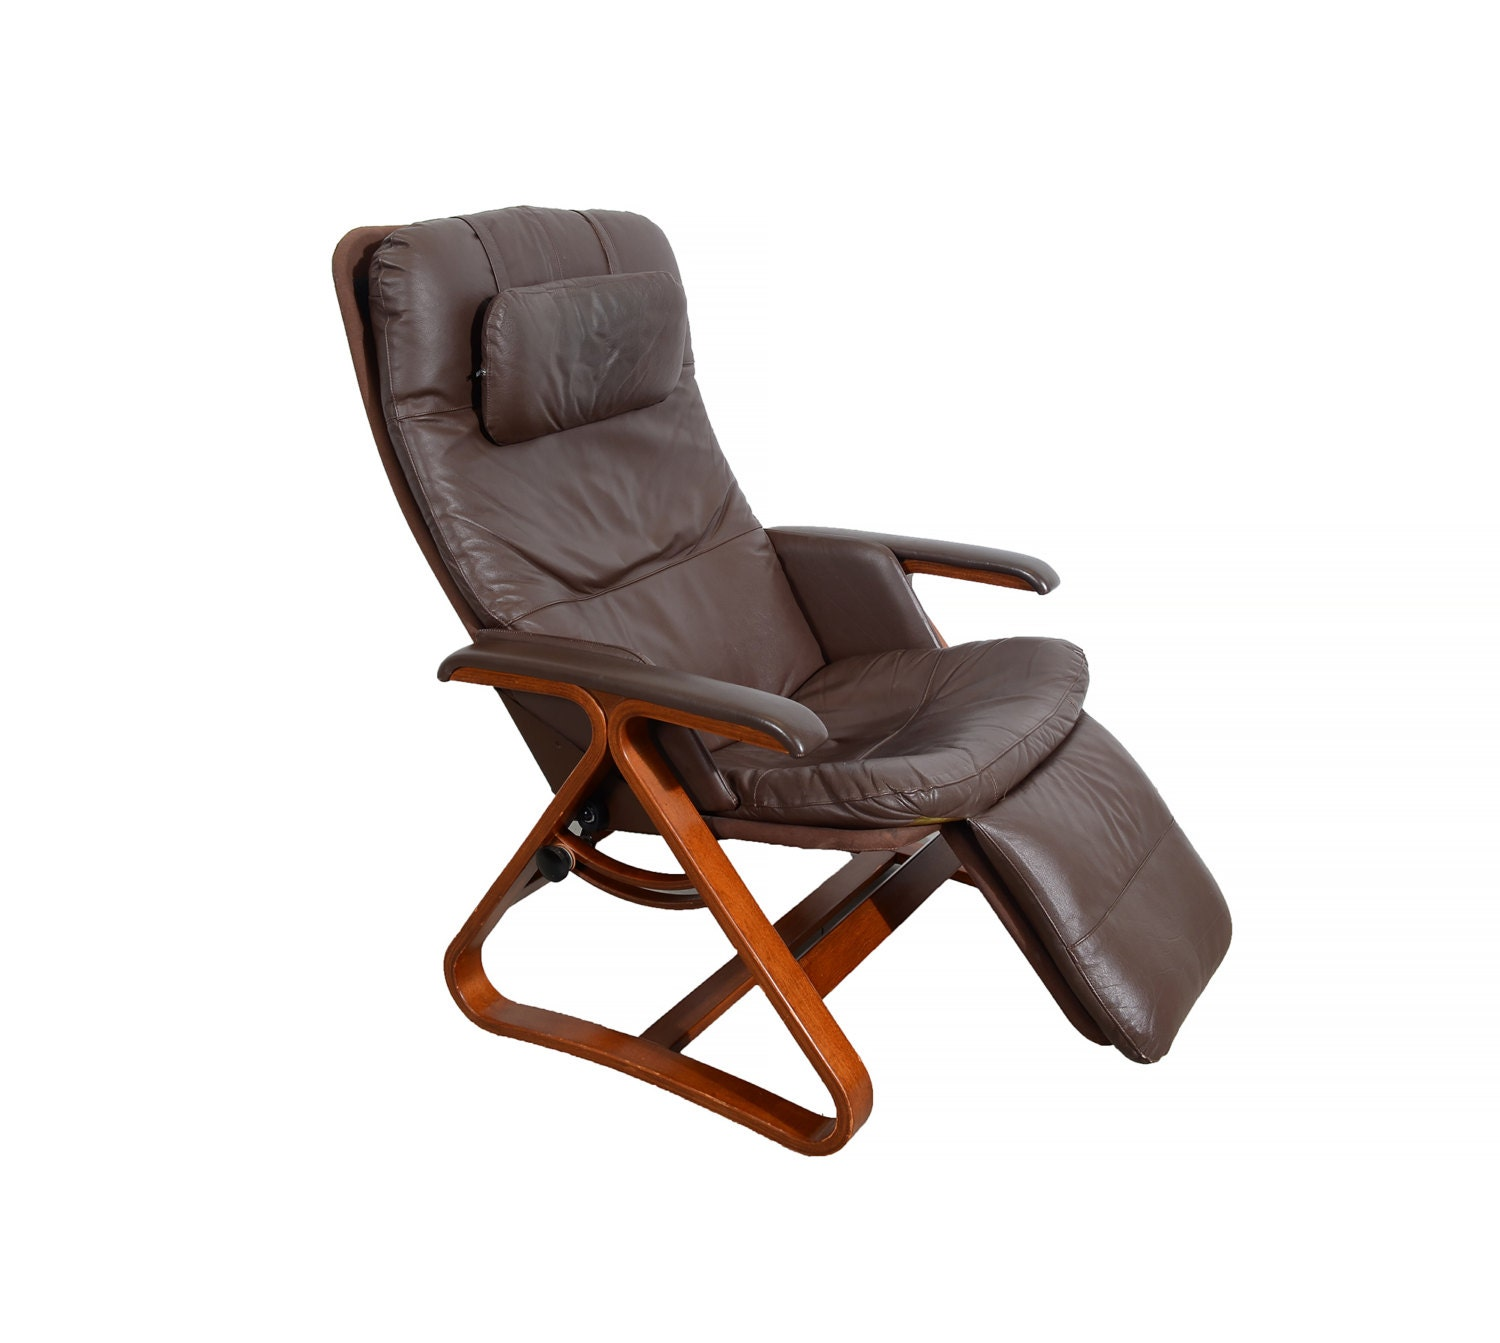 Leather Lounge Chair Backsaver Zero Gravity Chair Danish